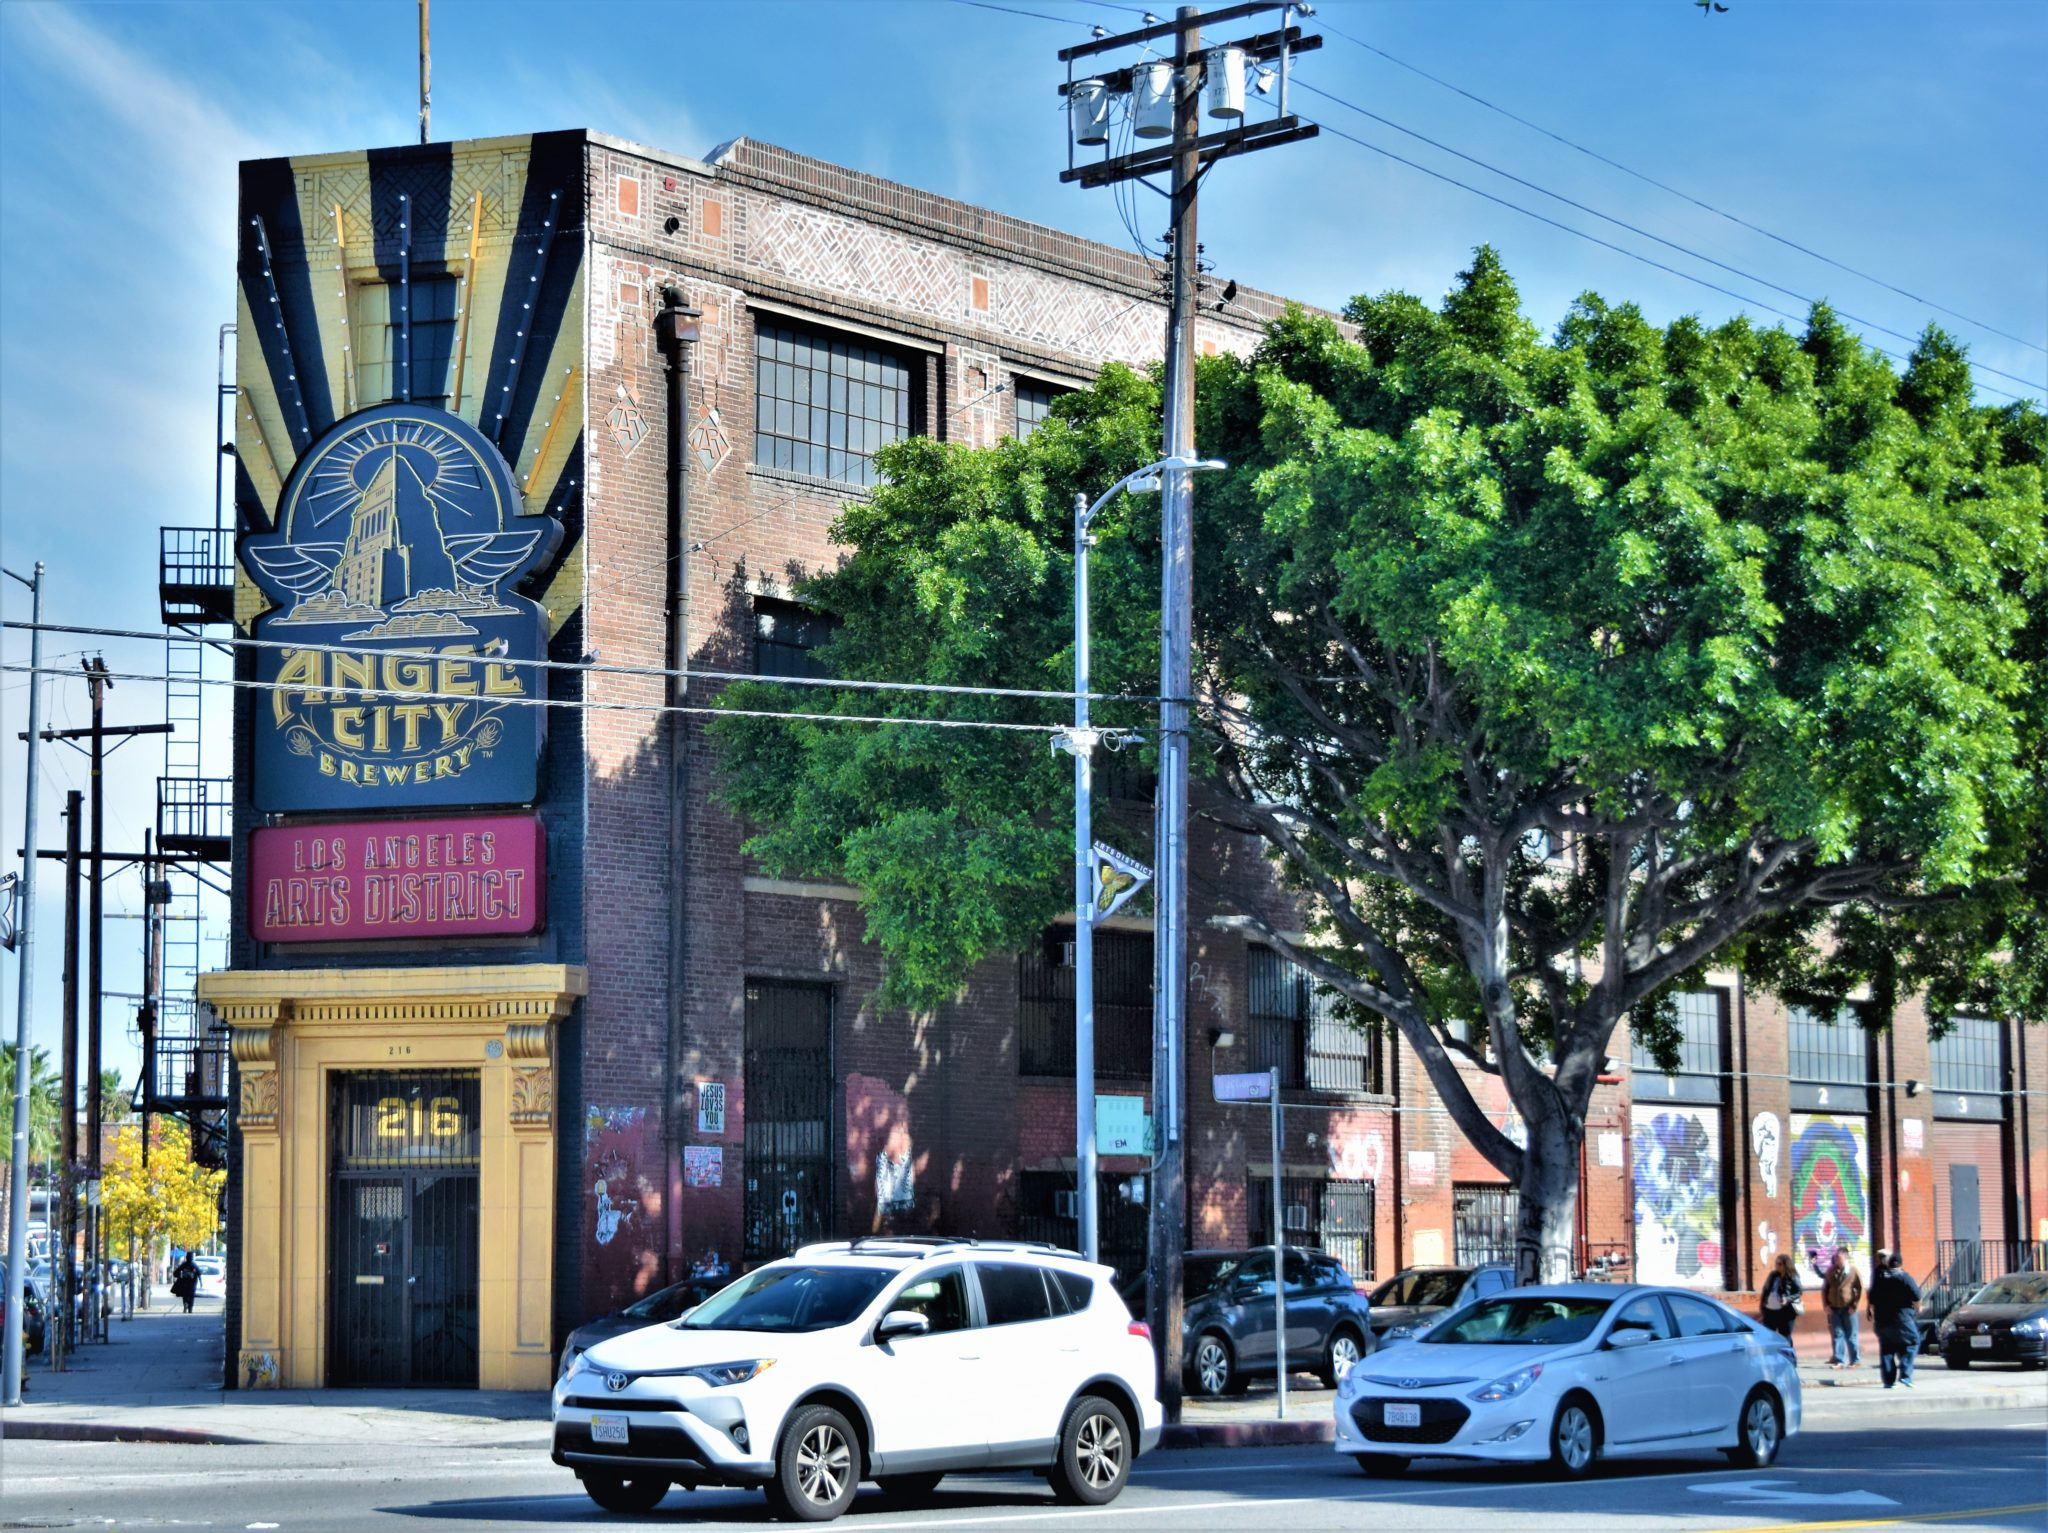 Angel City Brewery, los angeles, california